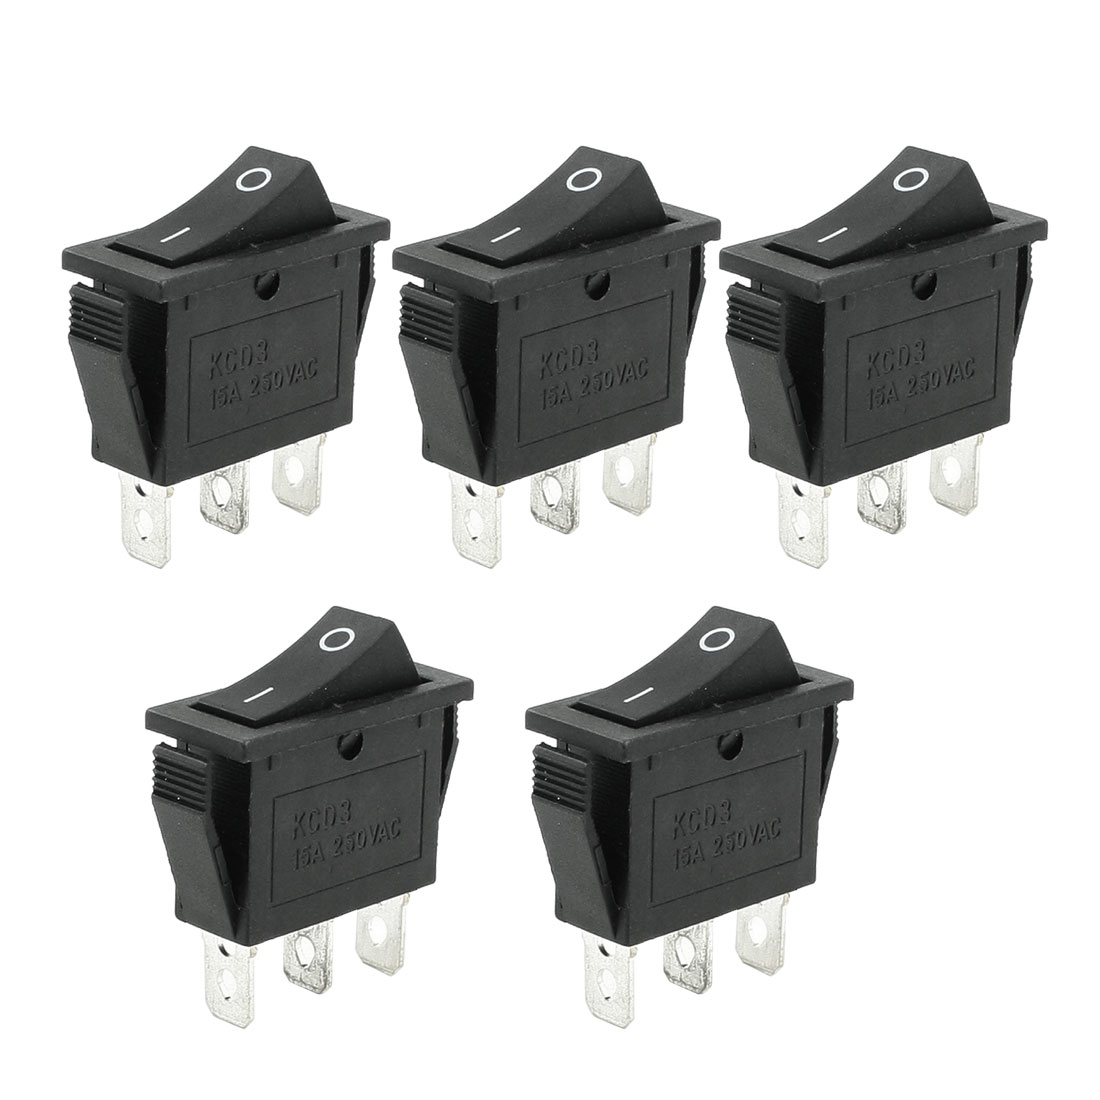 AC 250V 15A 2 Terminals SPST Black Rectangle On/Off Rocker Switch 5 Pcs